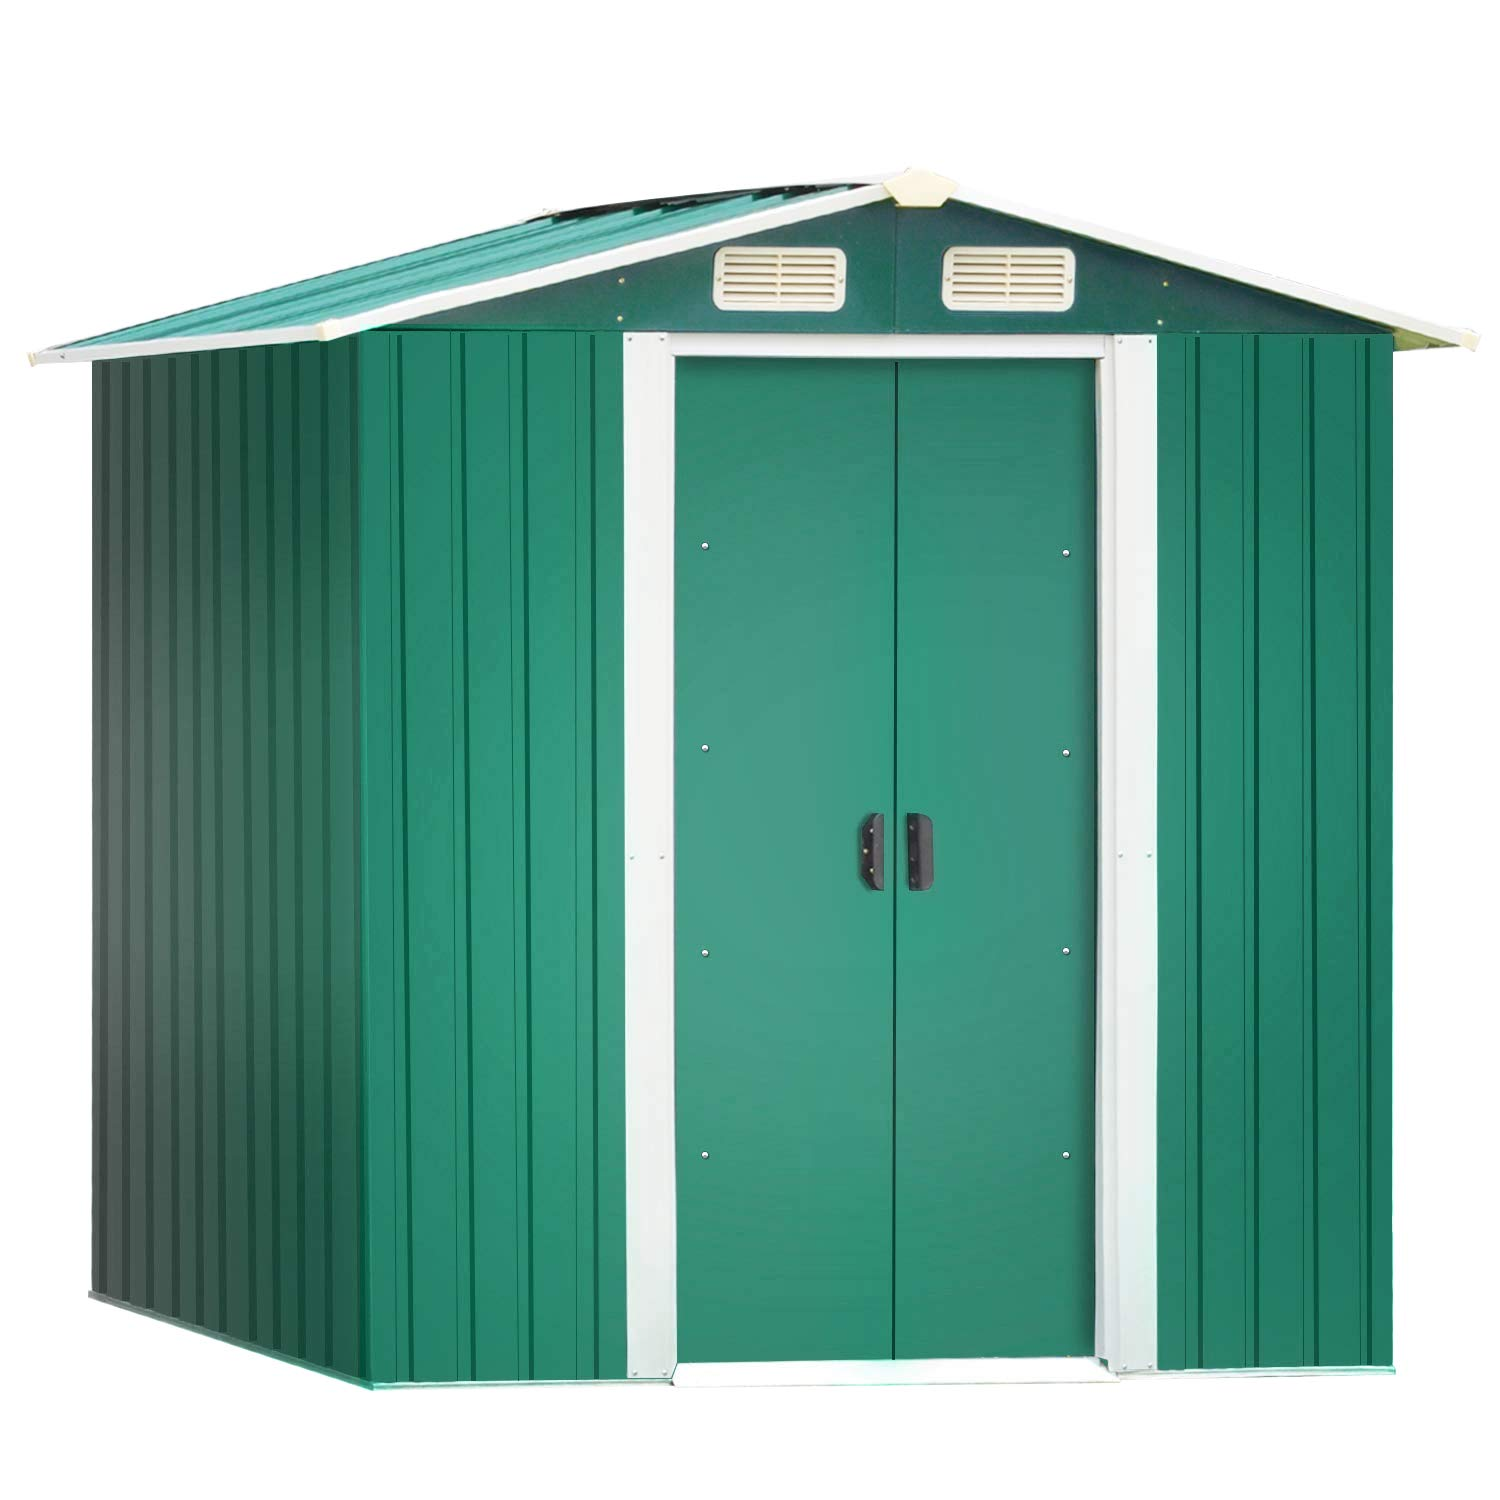 Leisure Zone Garden Metal Large Outdoor Shed -Patio Tool Lockable Storage Roofed Shed with Free Base & Double Easy Sliding Doors, Weatherproof Apex Roof 5 Years Warranty (6 x 4)